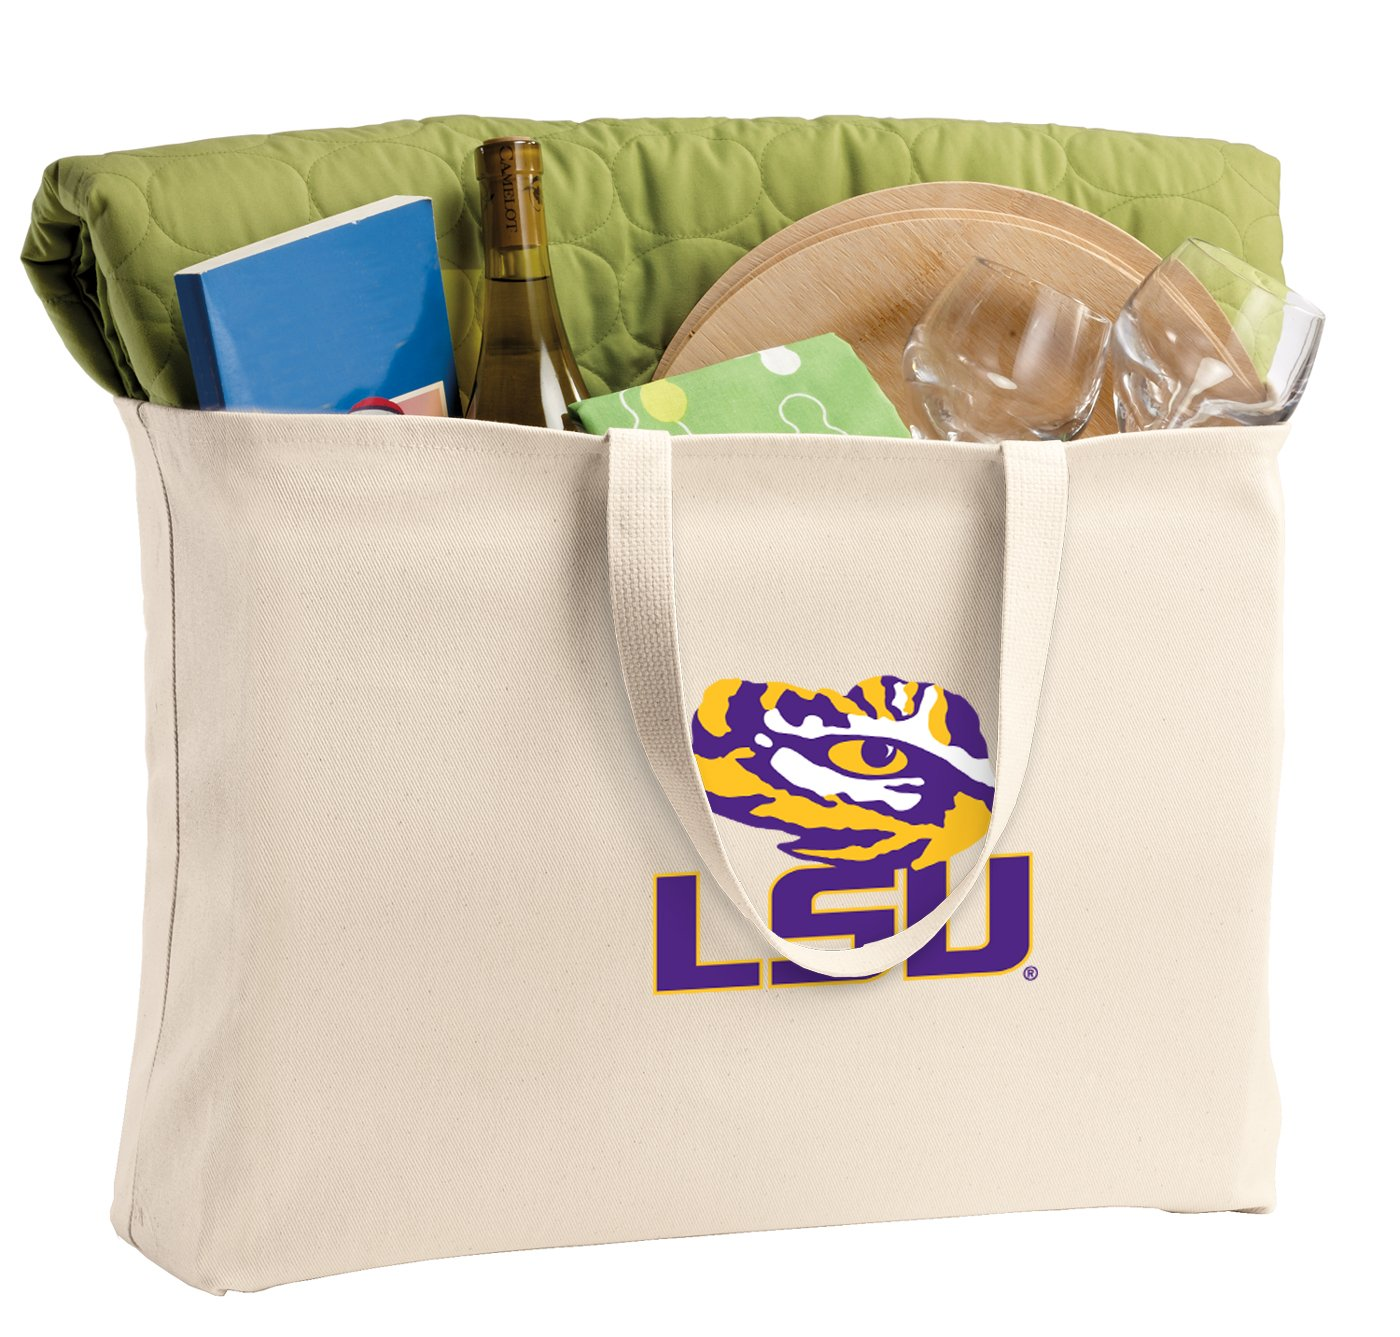 JUMBO LSU Tote Bag or Large Size Canvas LSU Shopping Bag